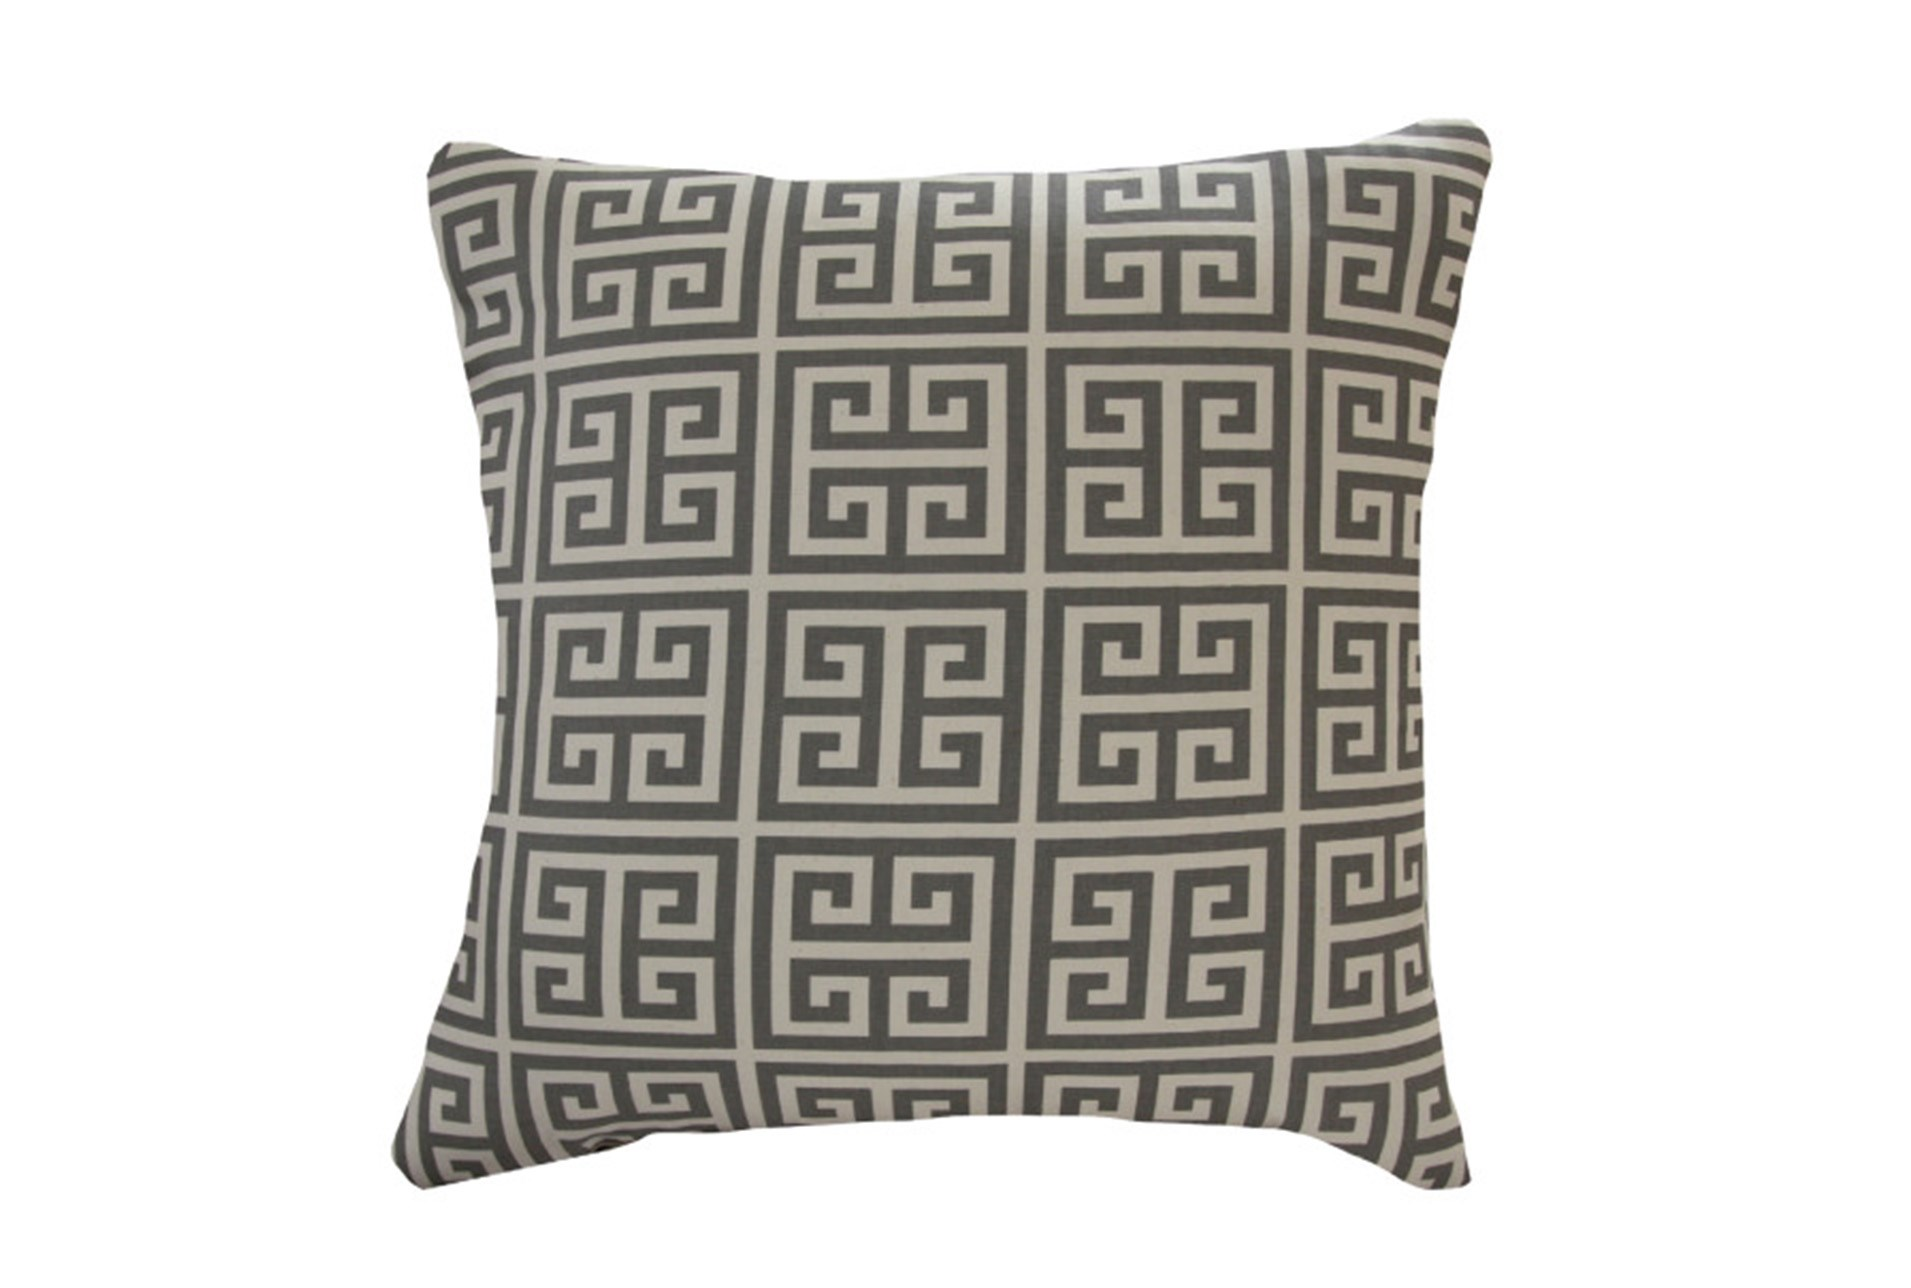 Accent Pillow Greek Key Grey 18x18 Qty 1 Has Been Successfully Added To Your Cart